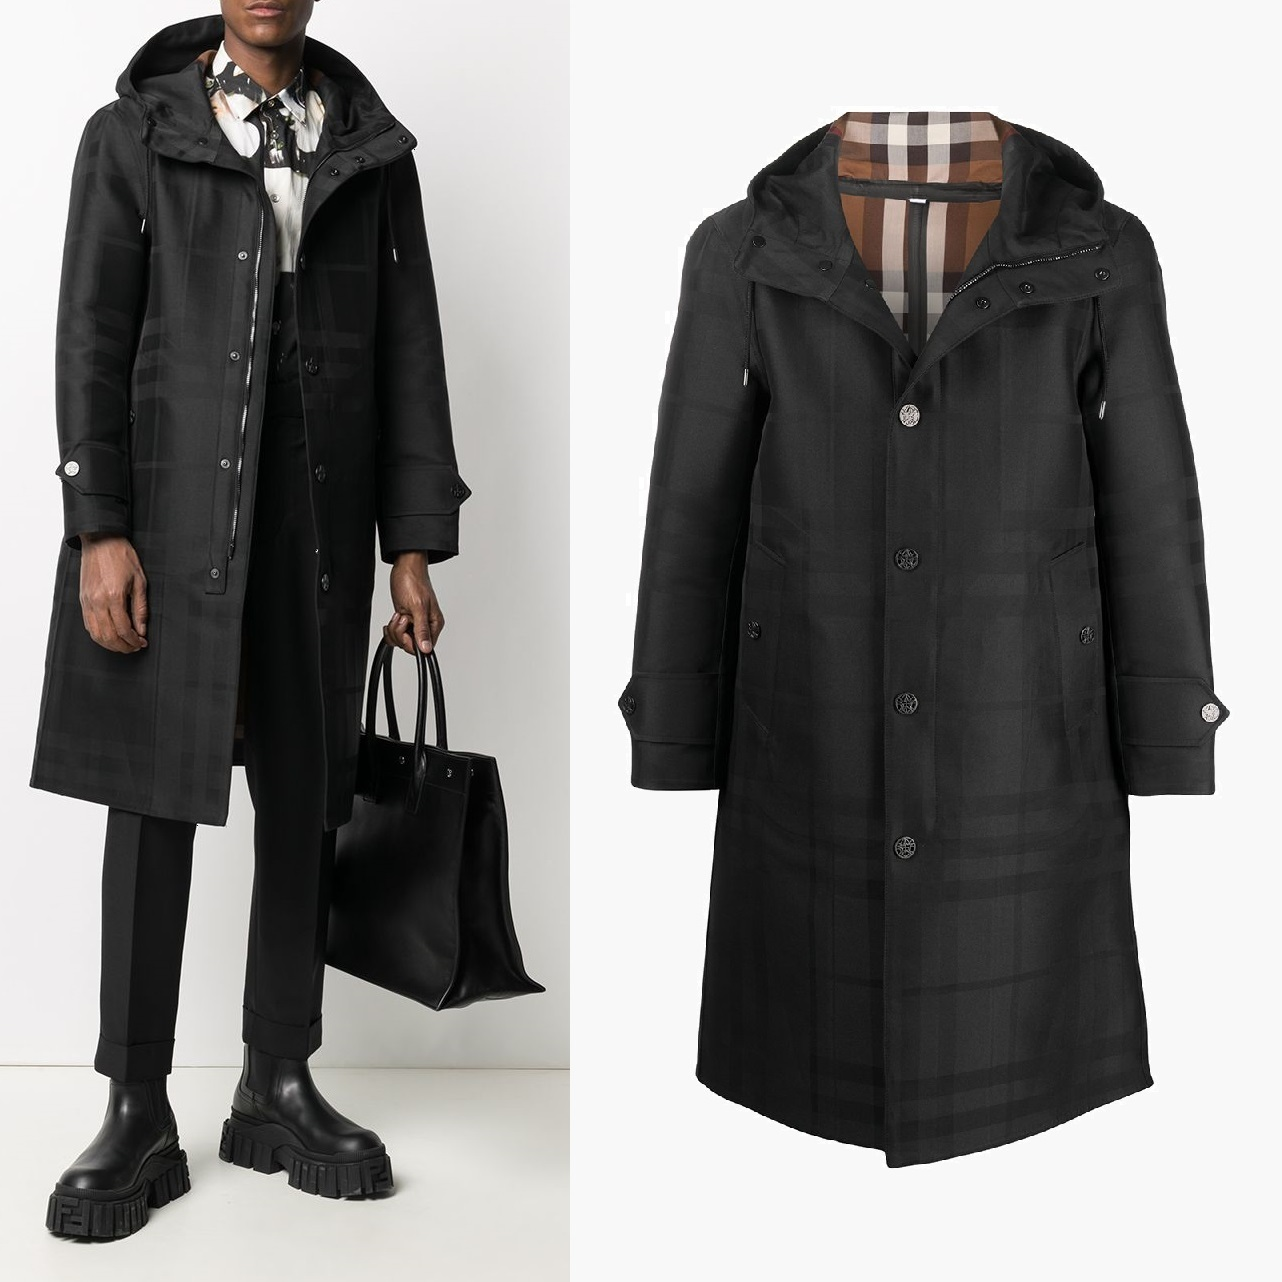 BURBERRY  WITHAM テクニカルコットンパーカ☆国内発送/関税込 (Burberry/コートその他) 8036863125001A1003